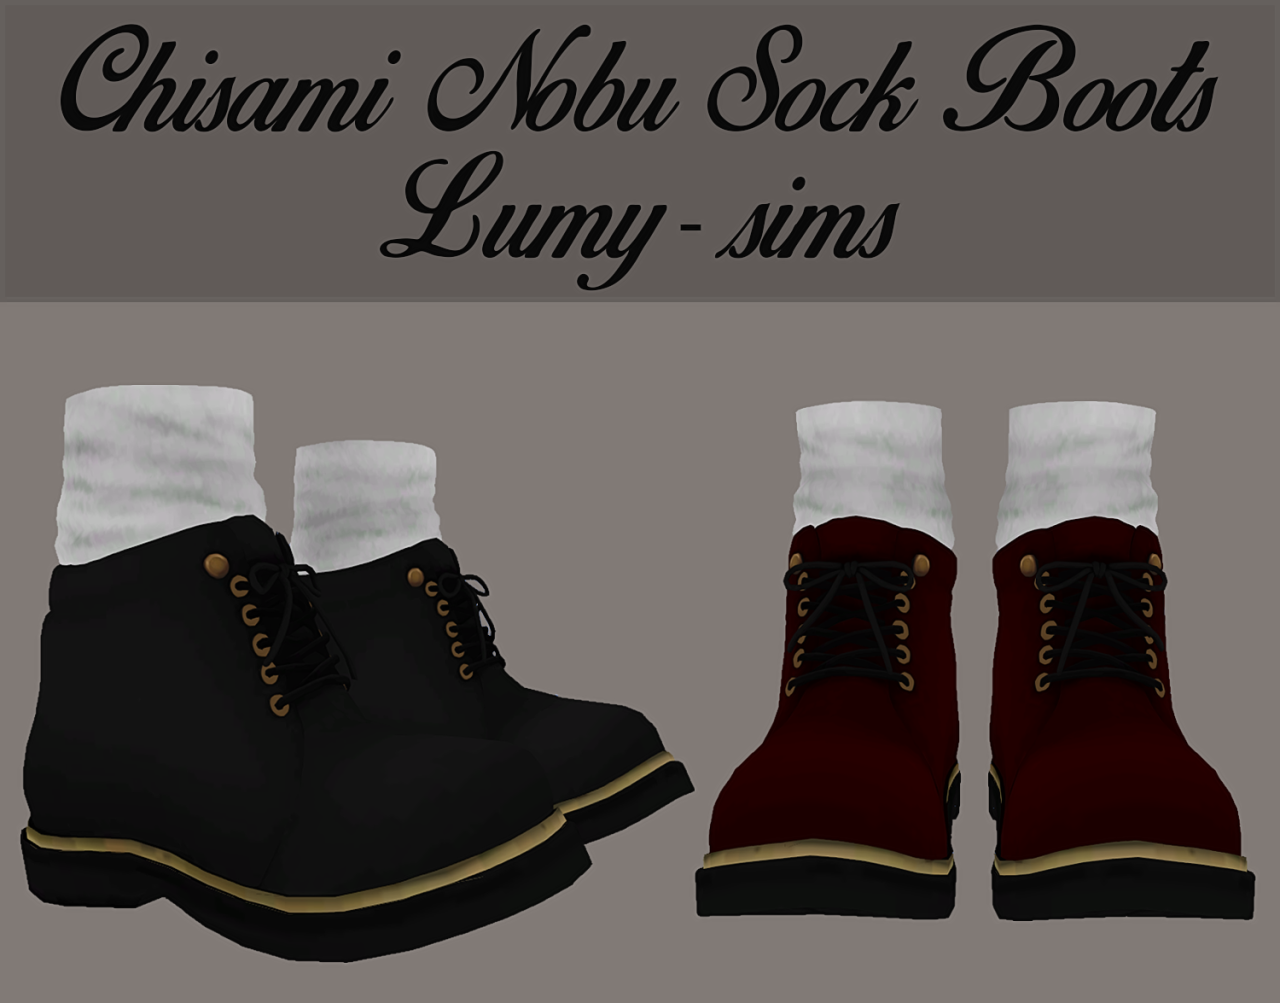 TS3 Nobu Sock Boots Conversion by LumySims